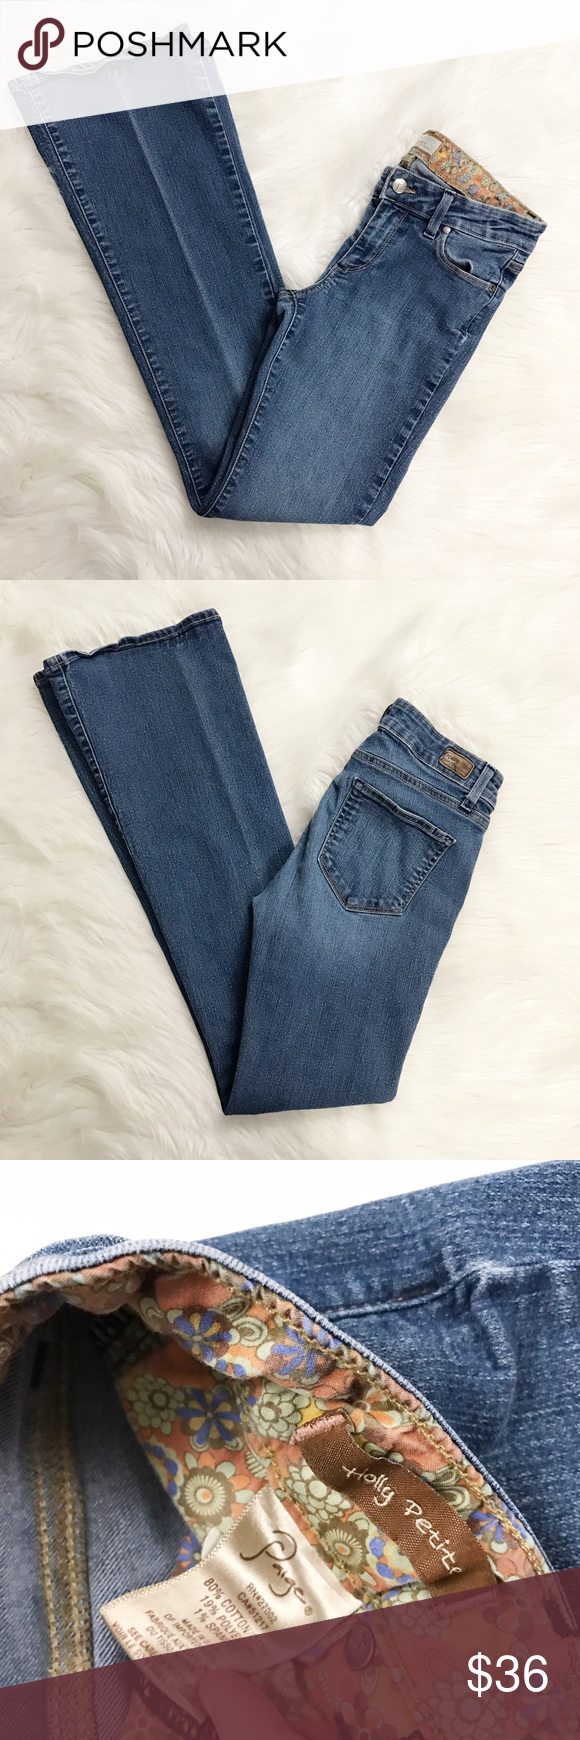 """Paige Holly Petite Jeans These jeans are very flattering and in excellent condition! These are the Holly Petite by Paige Jeans and in Medium wash! These are stretchy, no signs of fraying to material, light fade from creasing. Size 27,  inseam - 32"""", rise - 8"""". Paige Jeans Pants Boot Cut & Flare"""